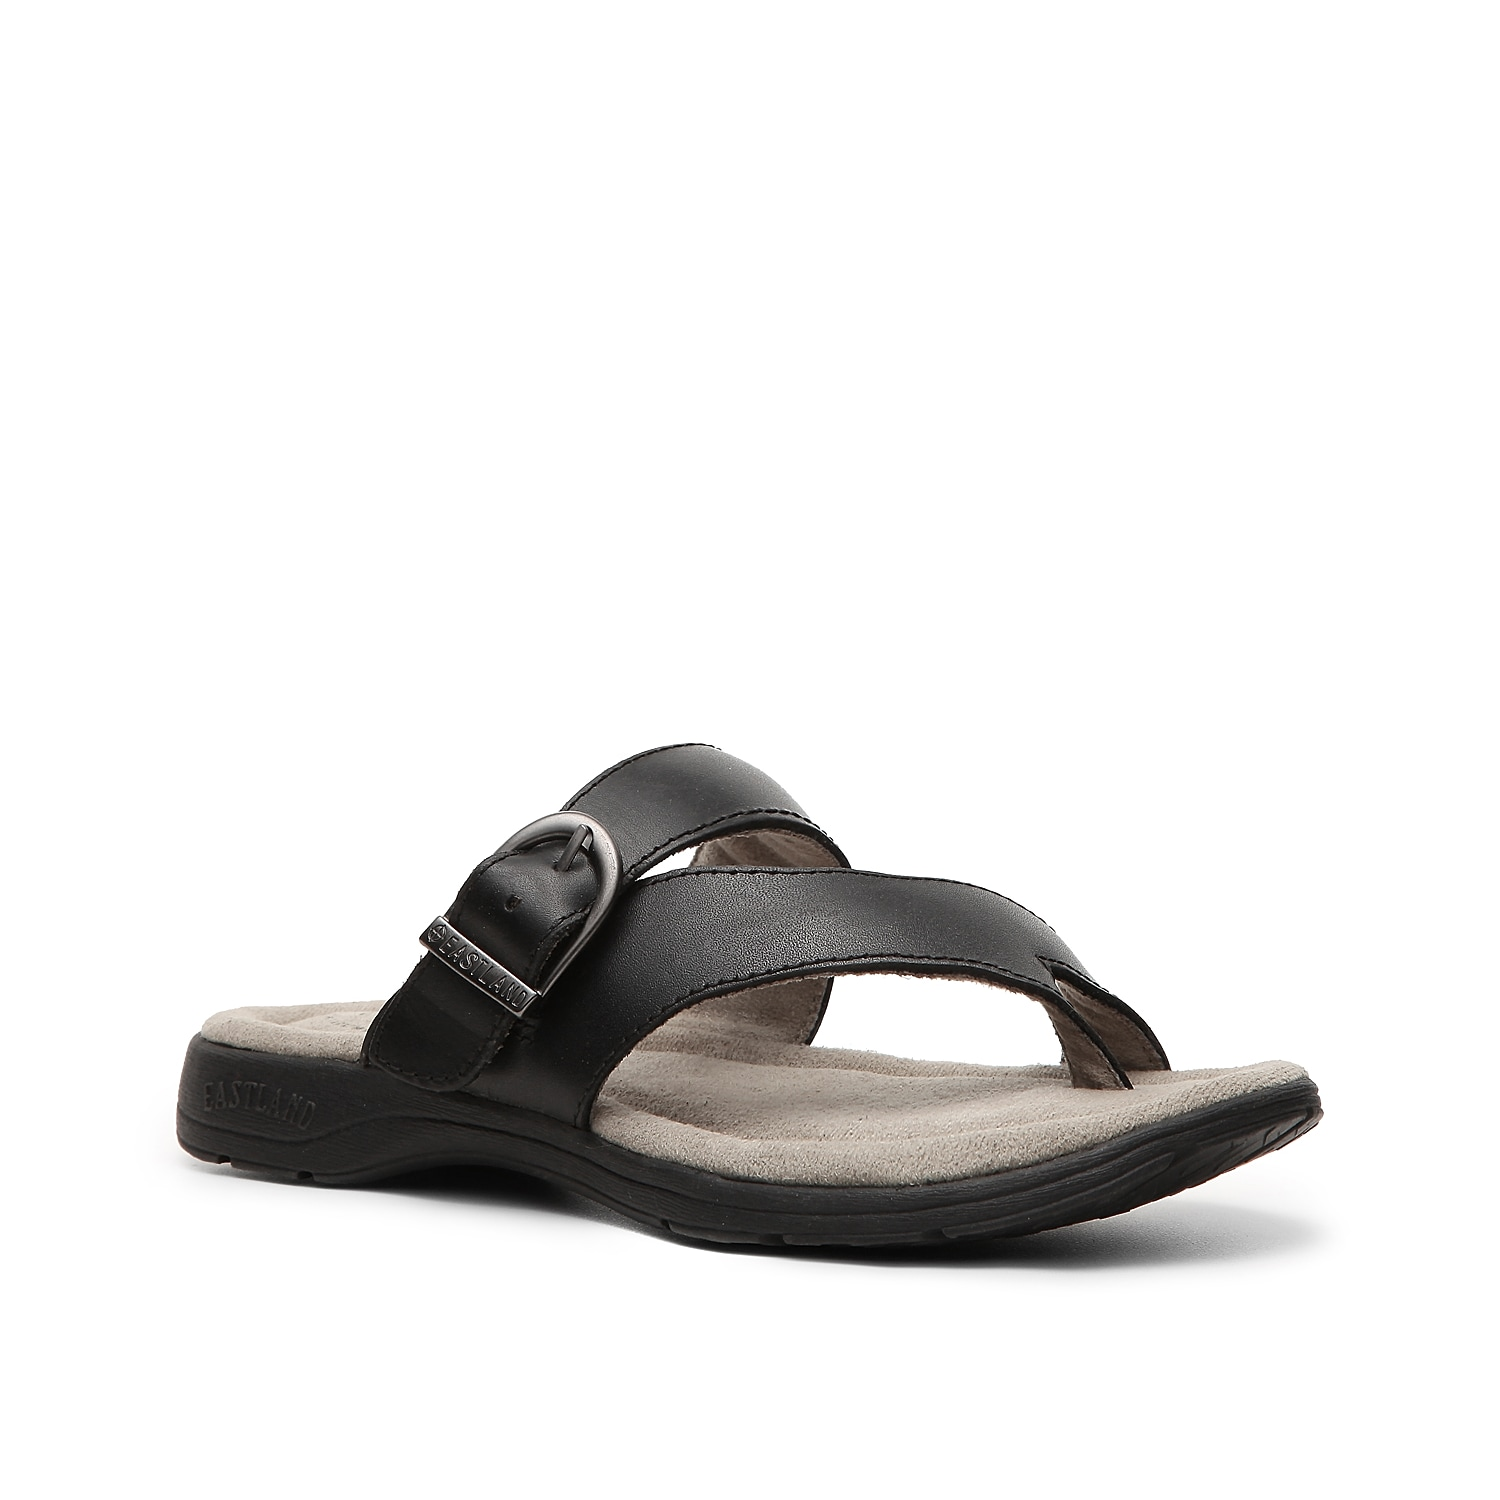 Slide into a versatile leather sandal designed for both comfort and style! With a plush memory foam footbed, the Eastland Tahiti II thong sandal is the perfect flat sandal for all day casual wear.